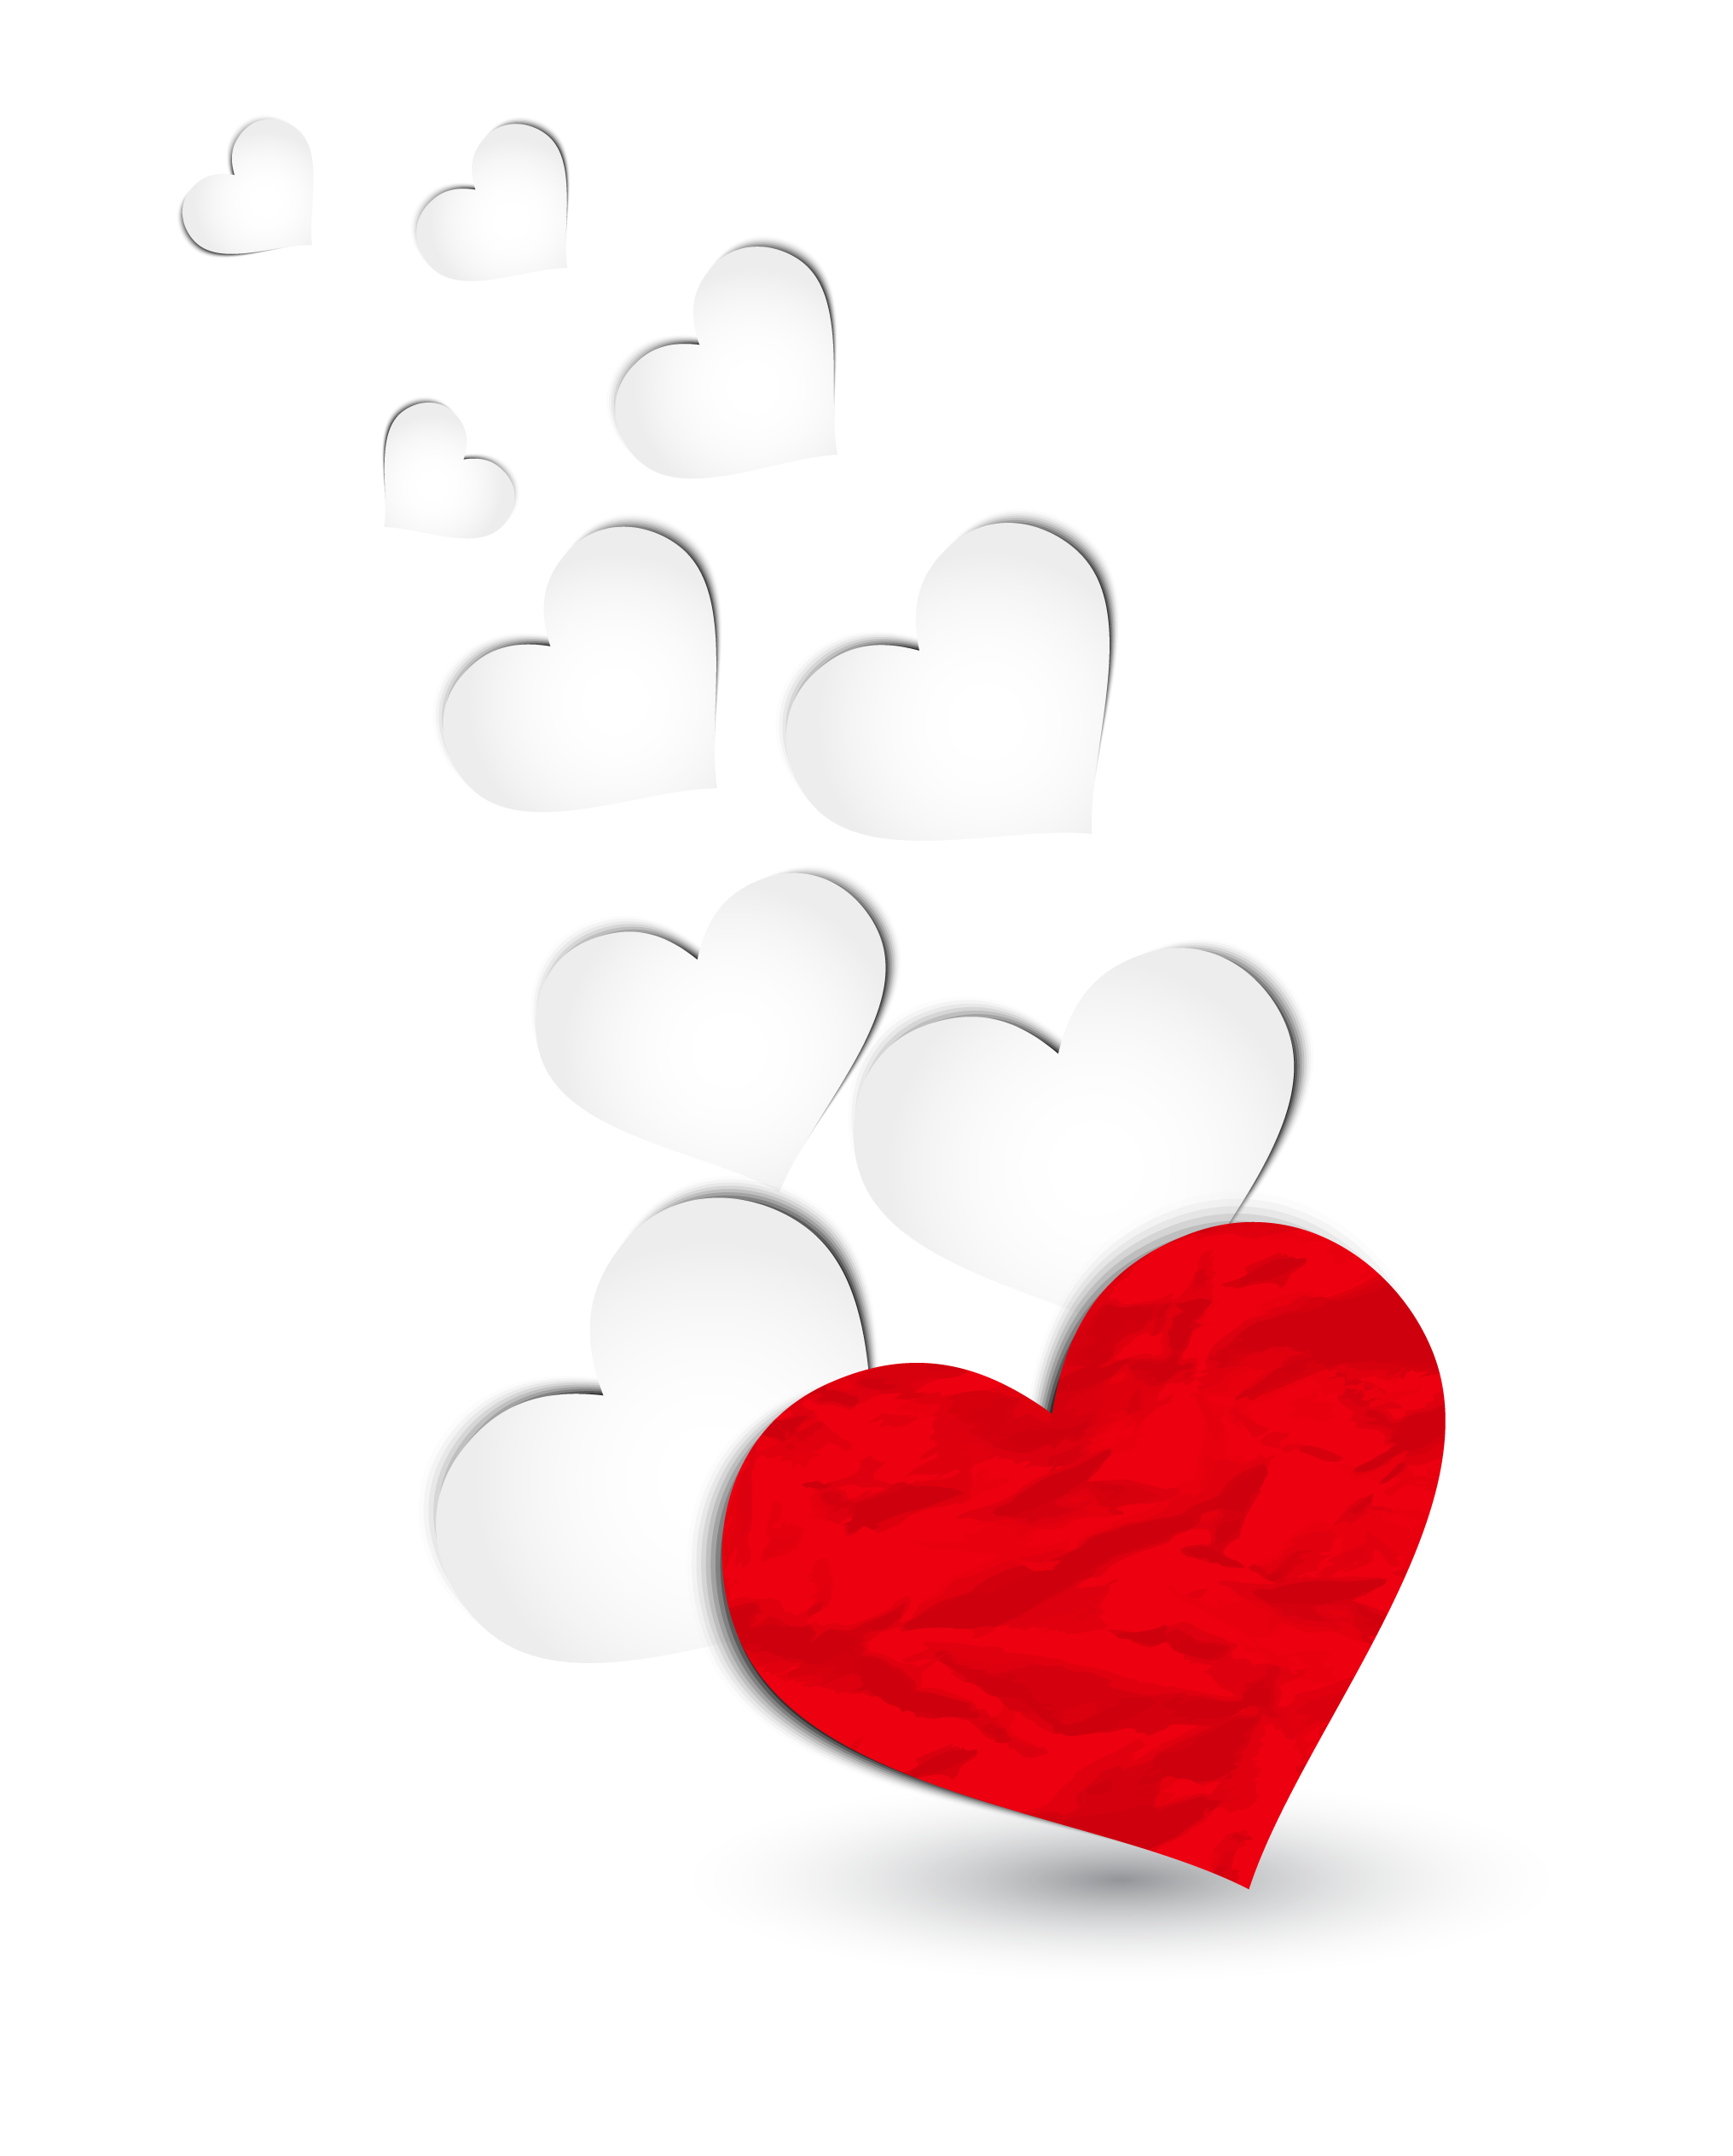 Red And White Hearts Decoration Png Clipart Picture White Heart Emoji Heart Decorations Love Heart Emoji